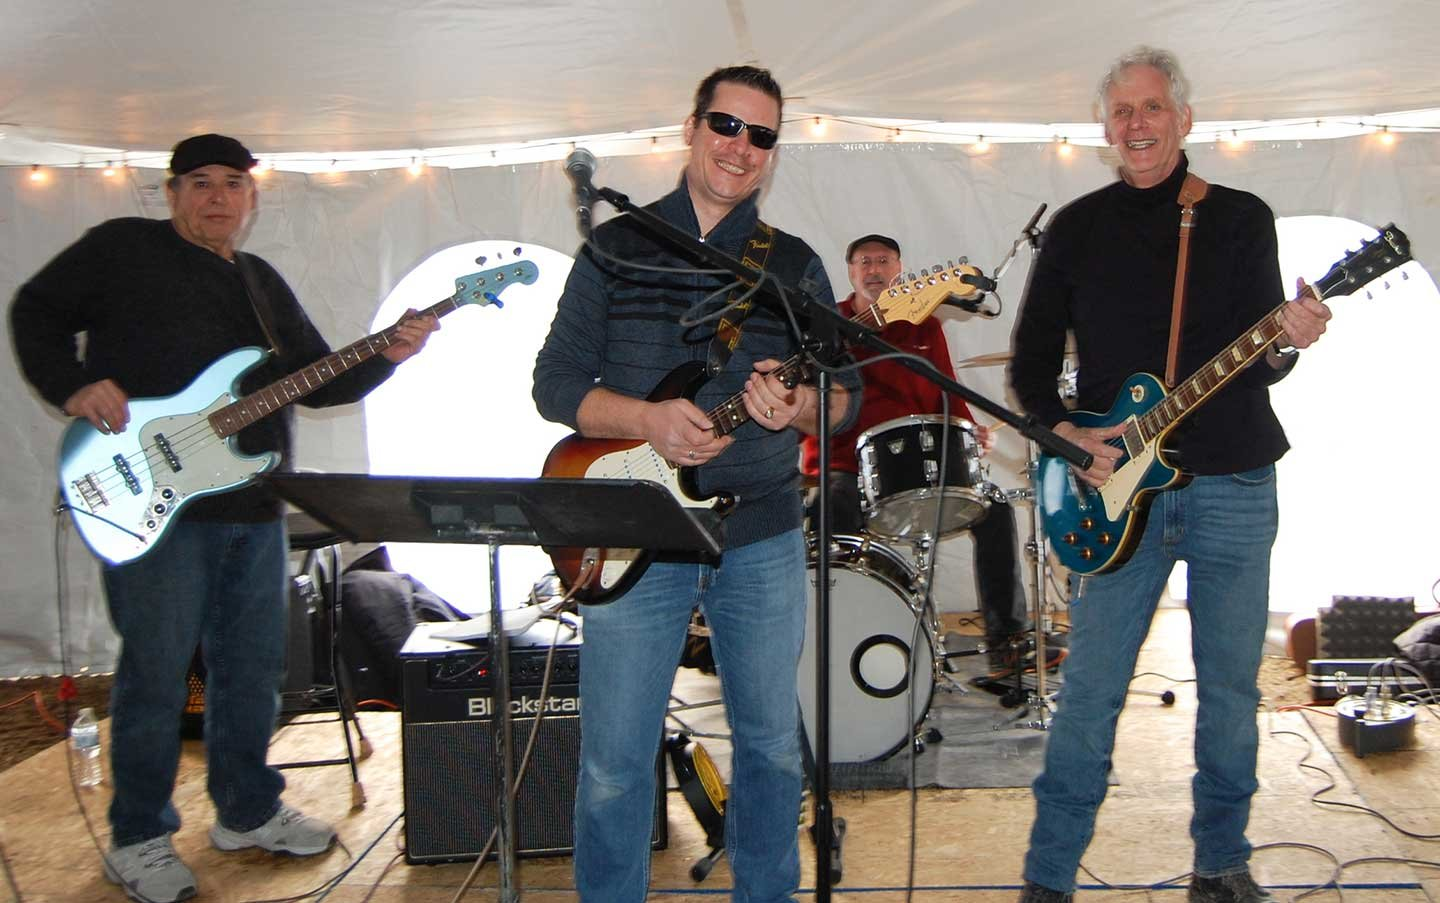 Peter Florence, right, and Albi Beluli, center, entertained with The New Kings during the Trout Town WinterFest in Roscoe, NY over the weekend.